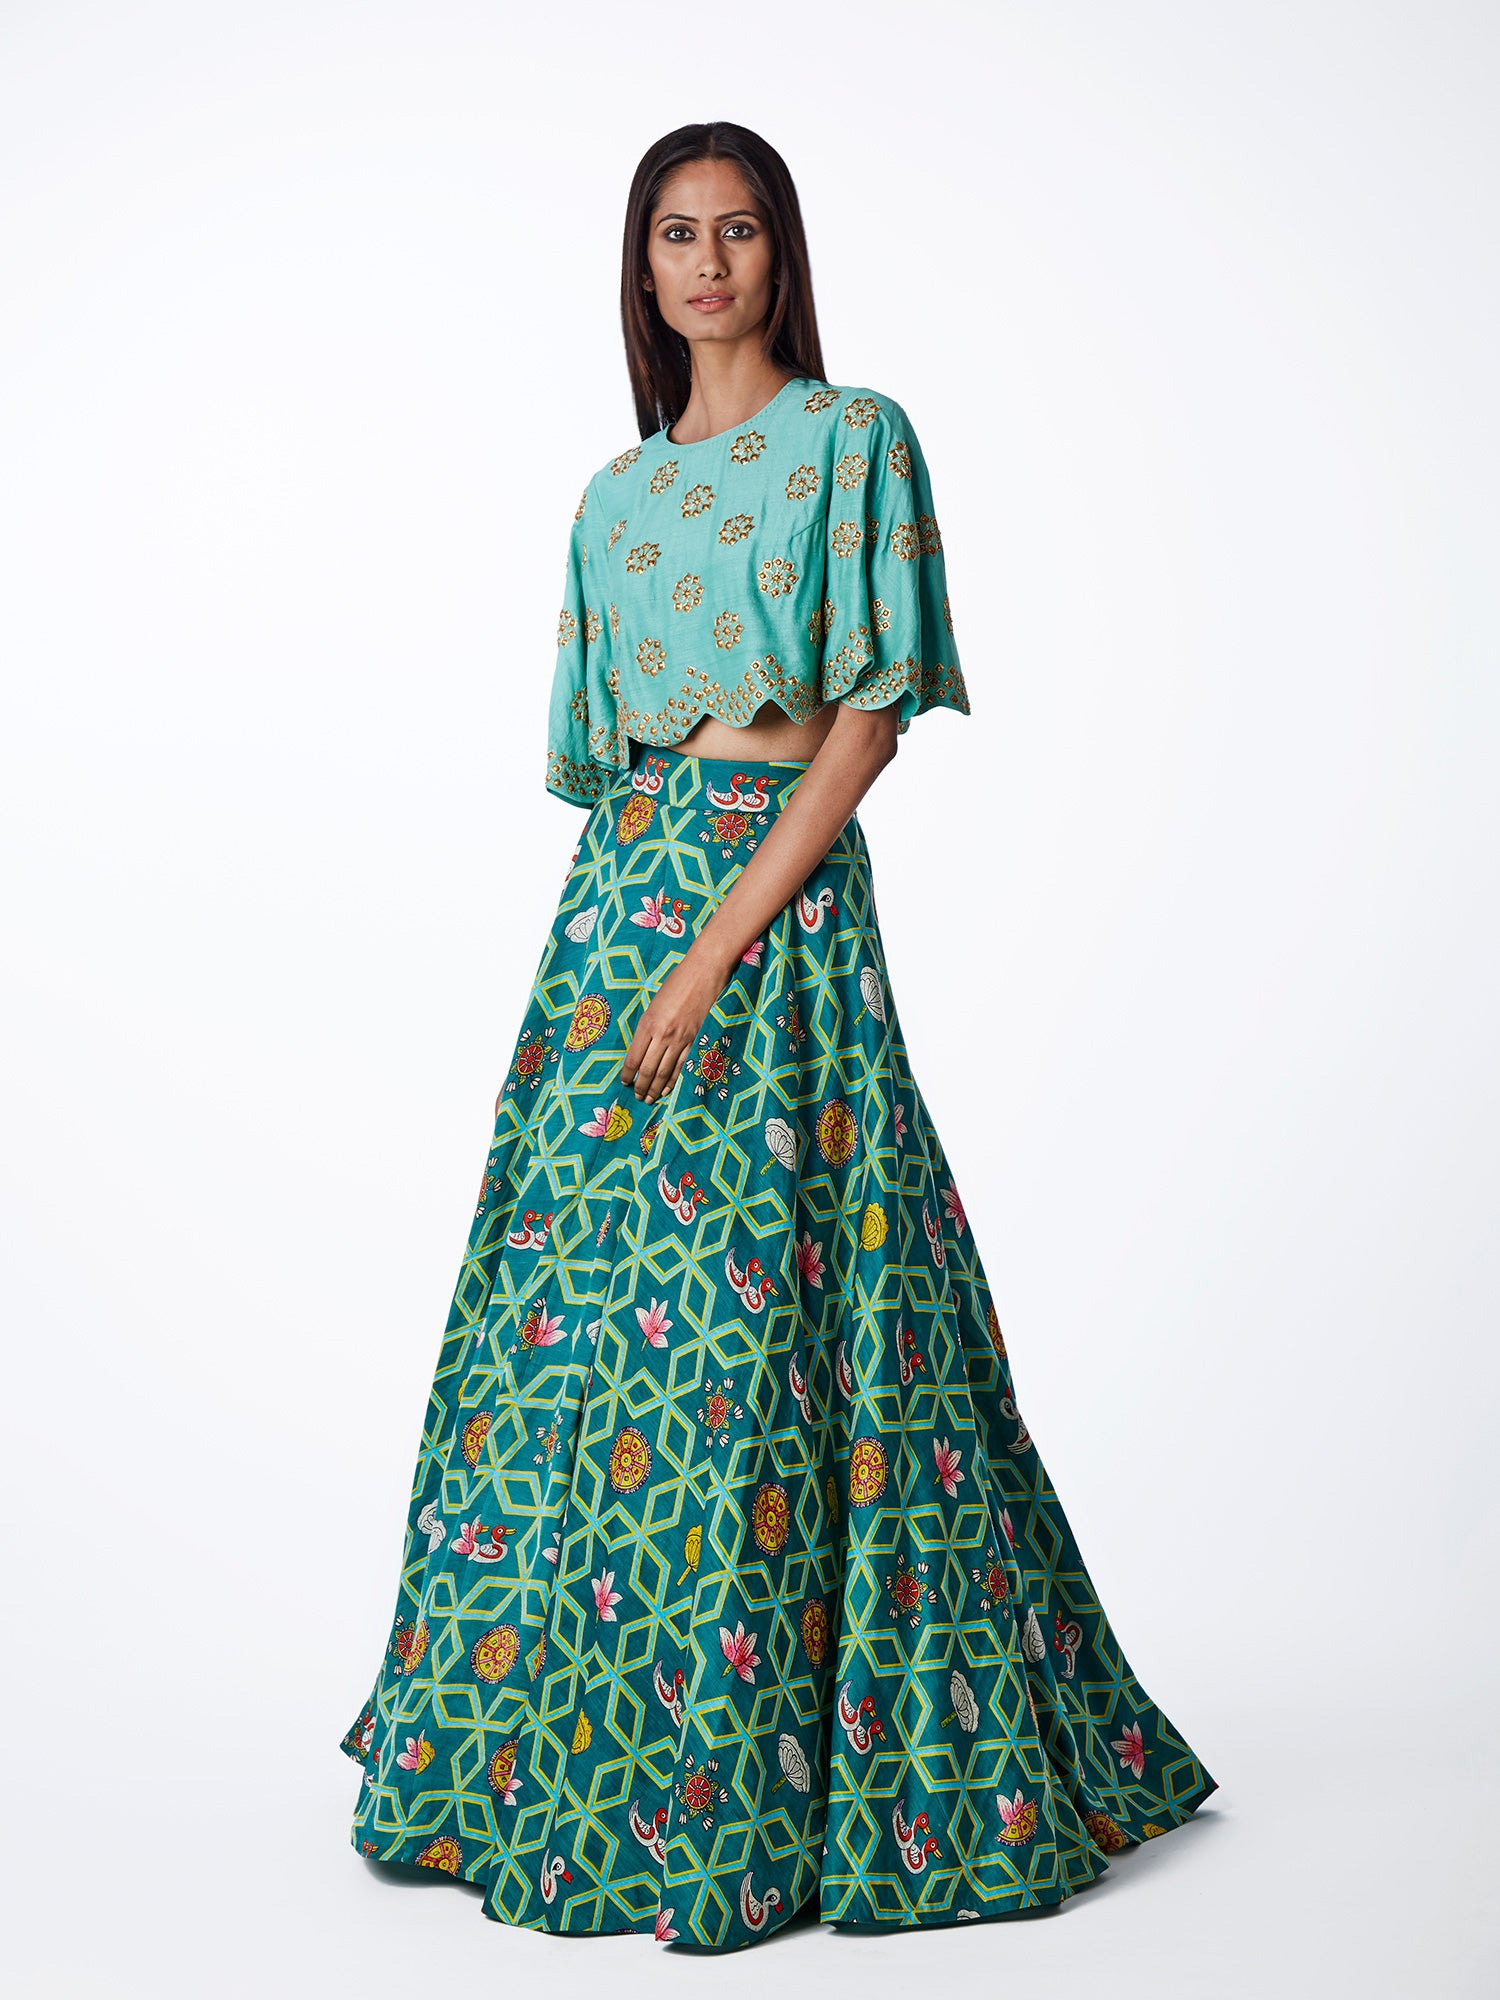 teal, embroidered, printed, silk, satin, lehenga, bridal, indianwedding, lehenga choli, blouse, swati vijaivargie